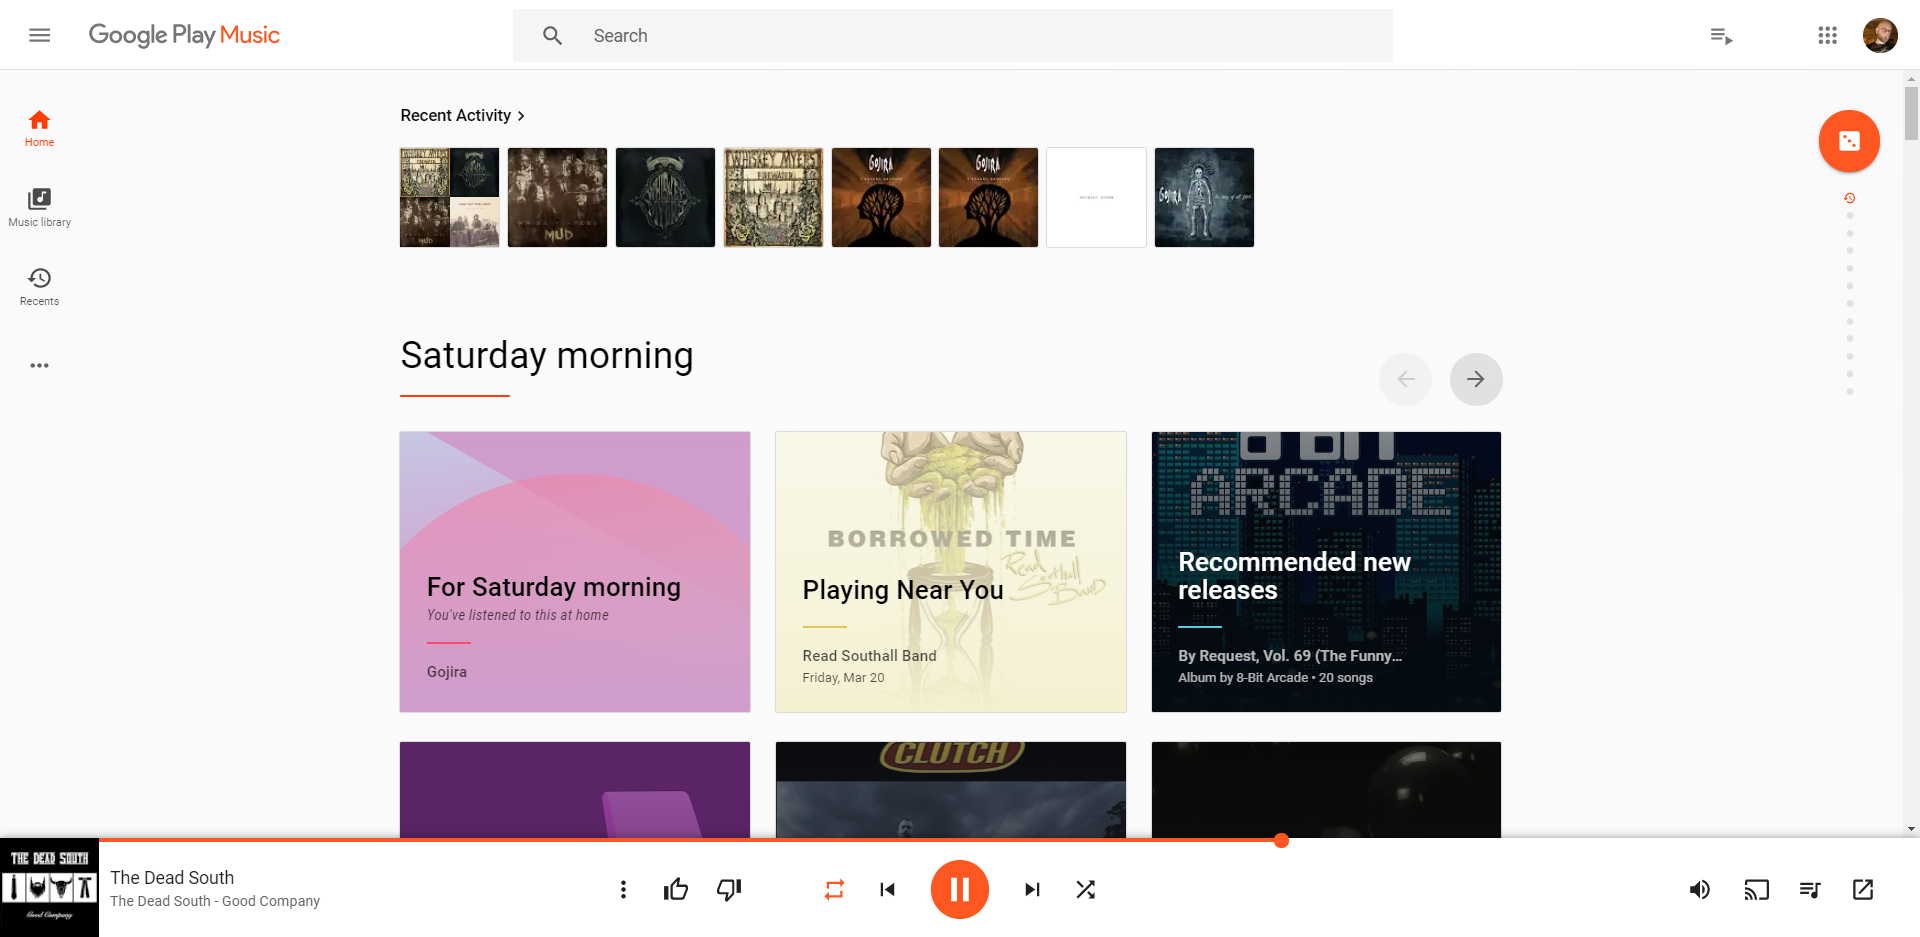 Google Play Music's Home Page